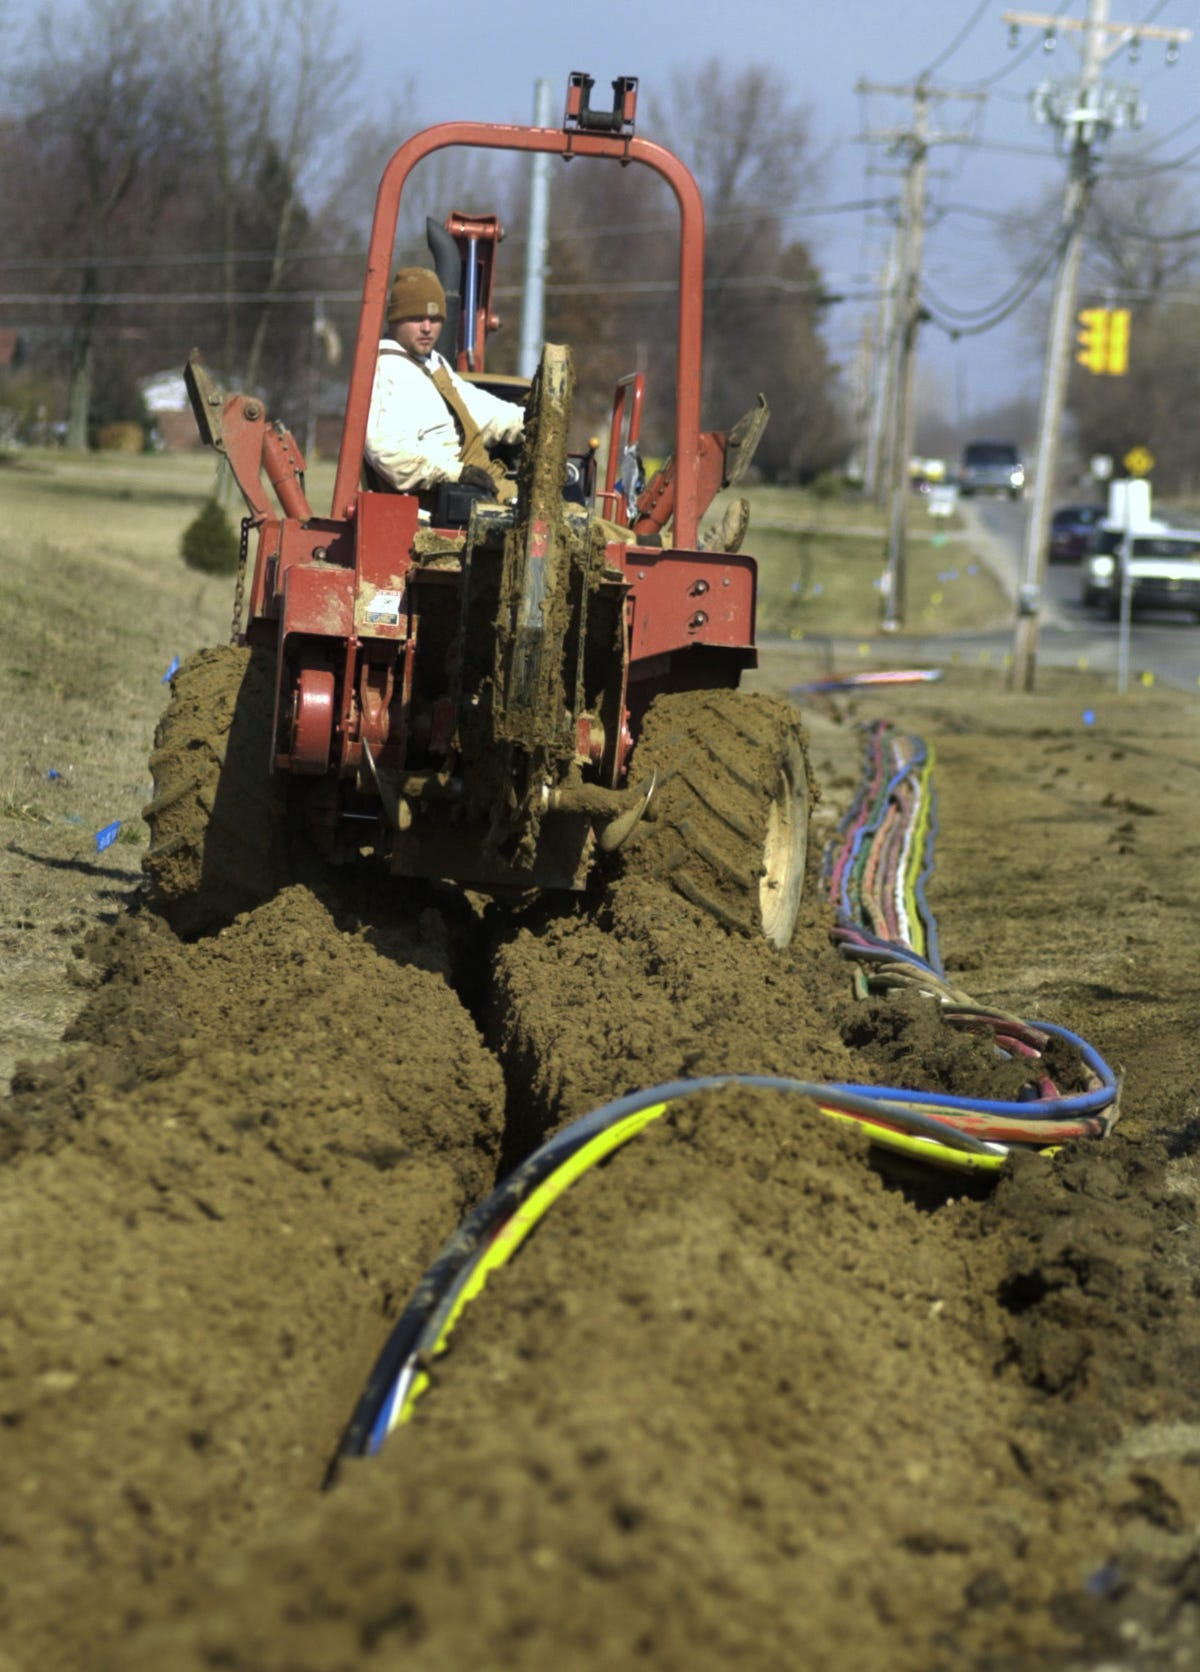 Despite state probe, MetroNet can't be penalized for gas line ruptures